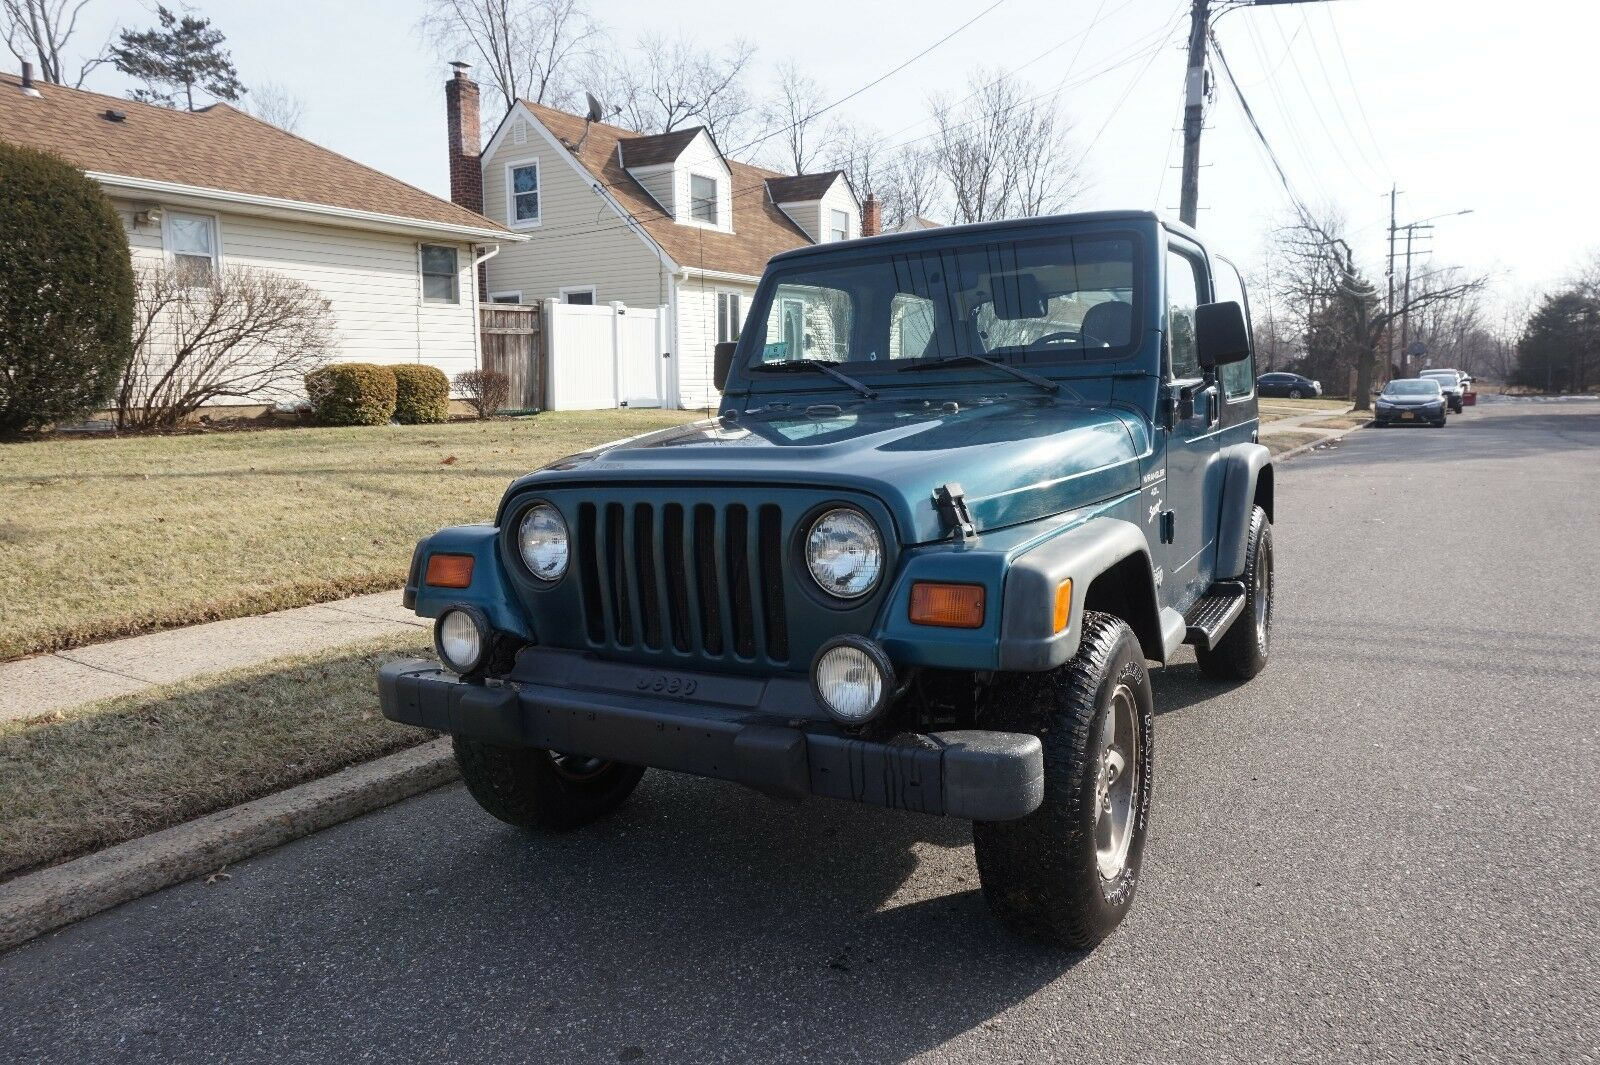 1998 Jeep Wrangler SPORT JEEP WRANGLER AUTOMATIC, RUST FREE FRAME AND BODY